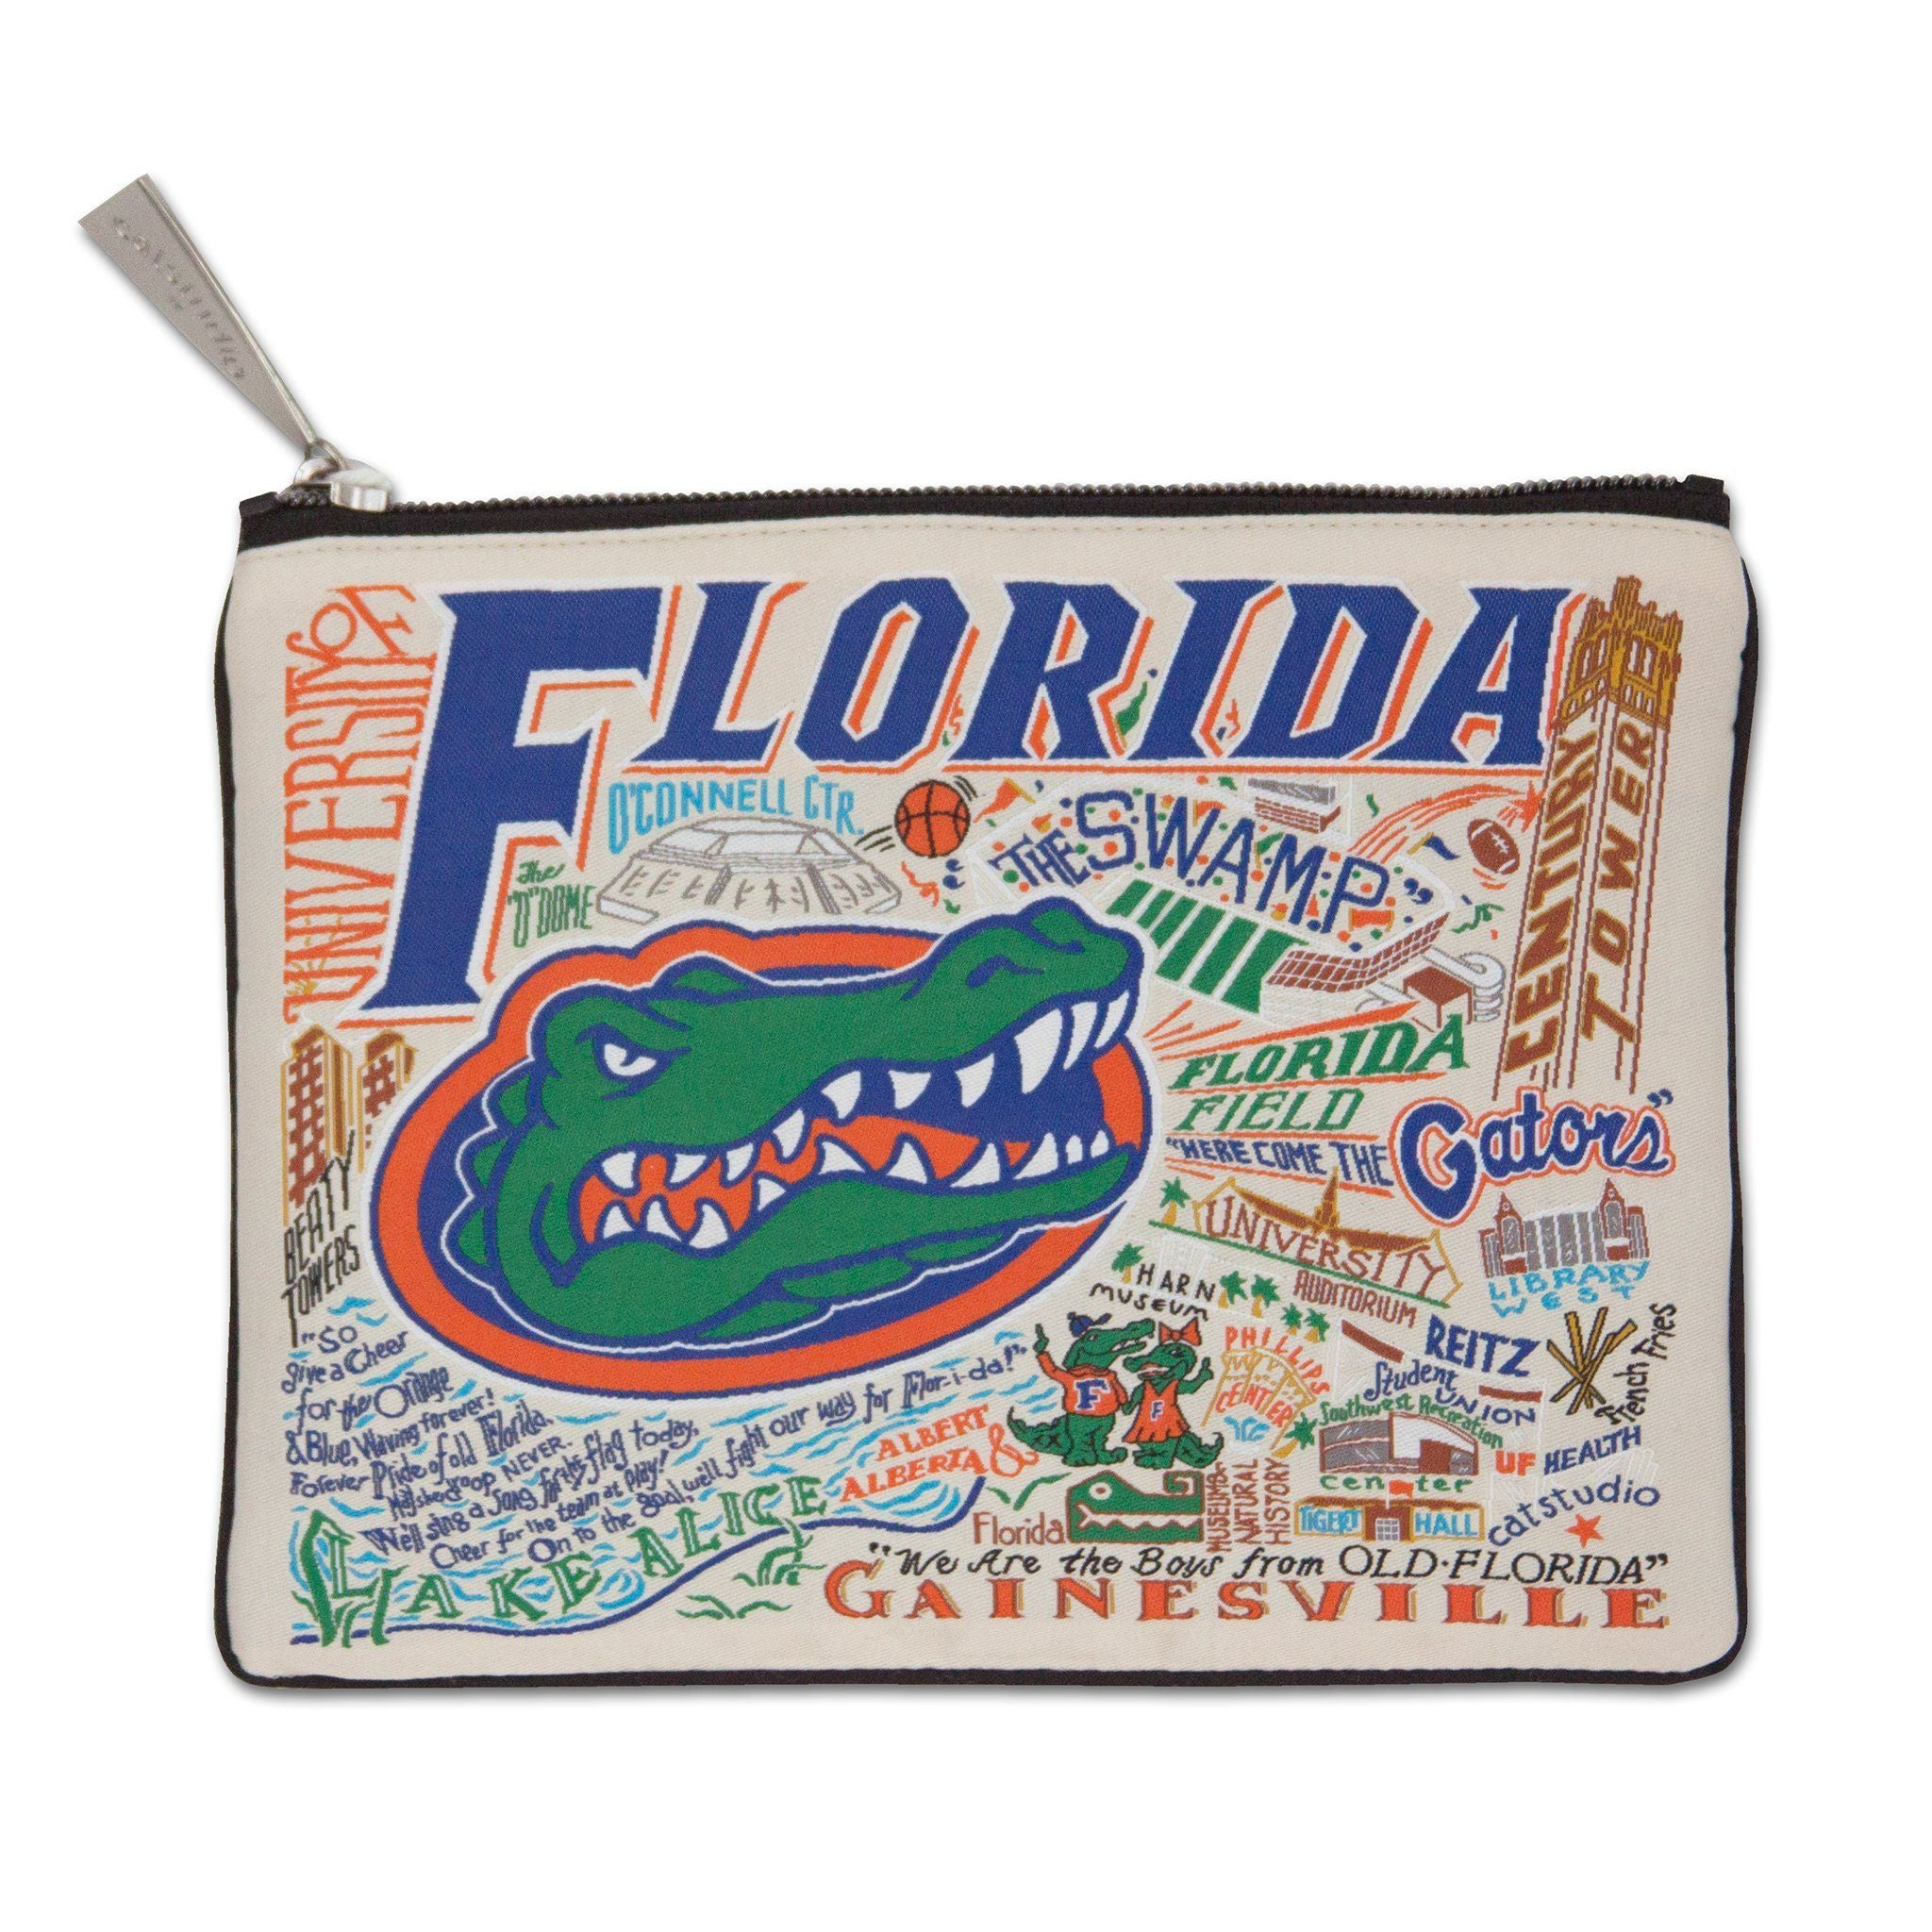 Catstudio Collegiate Zip Pouch - the University of Florida